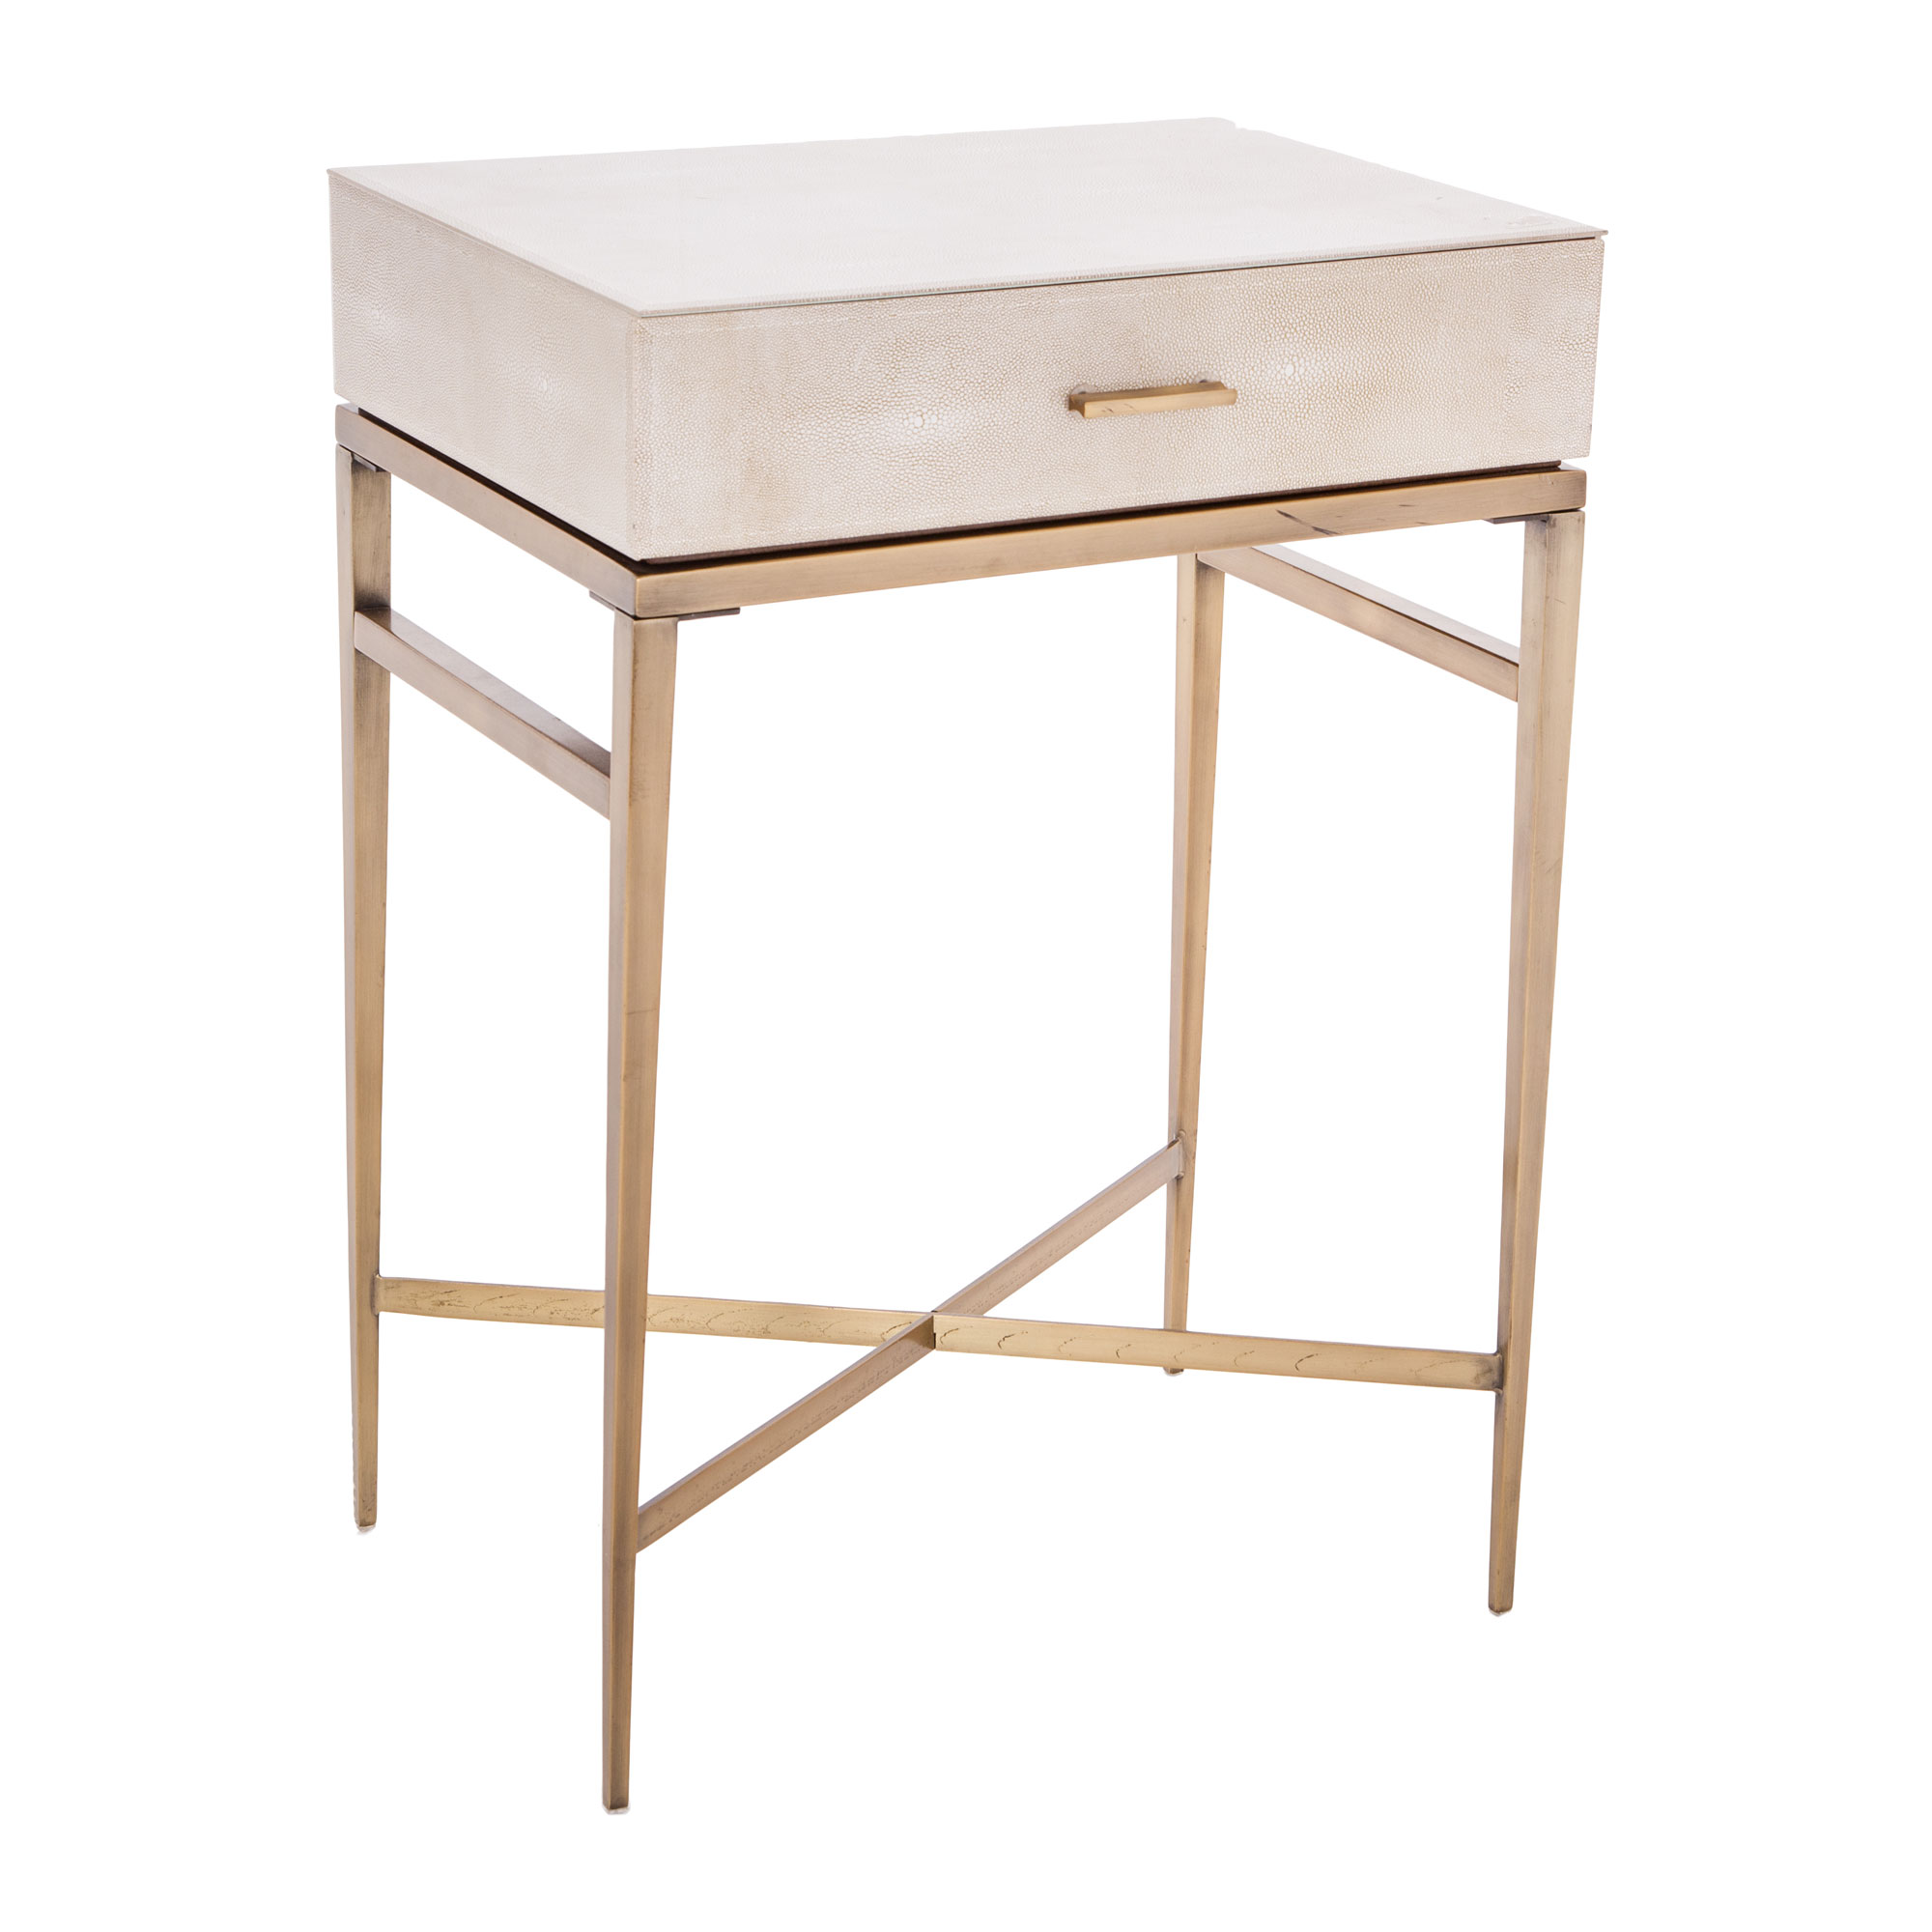 Esta 1 Drawer side table